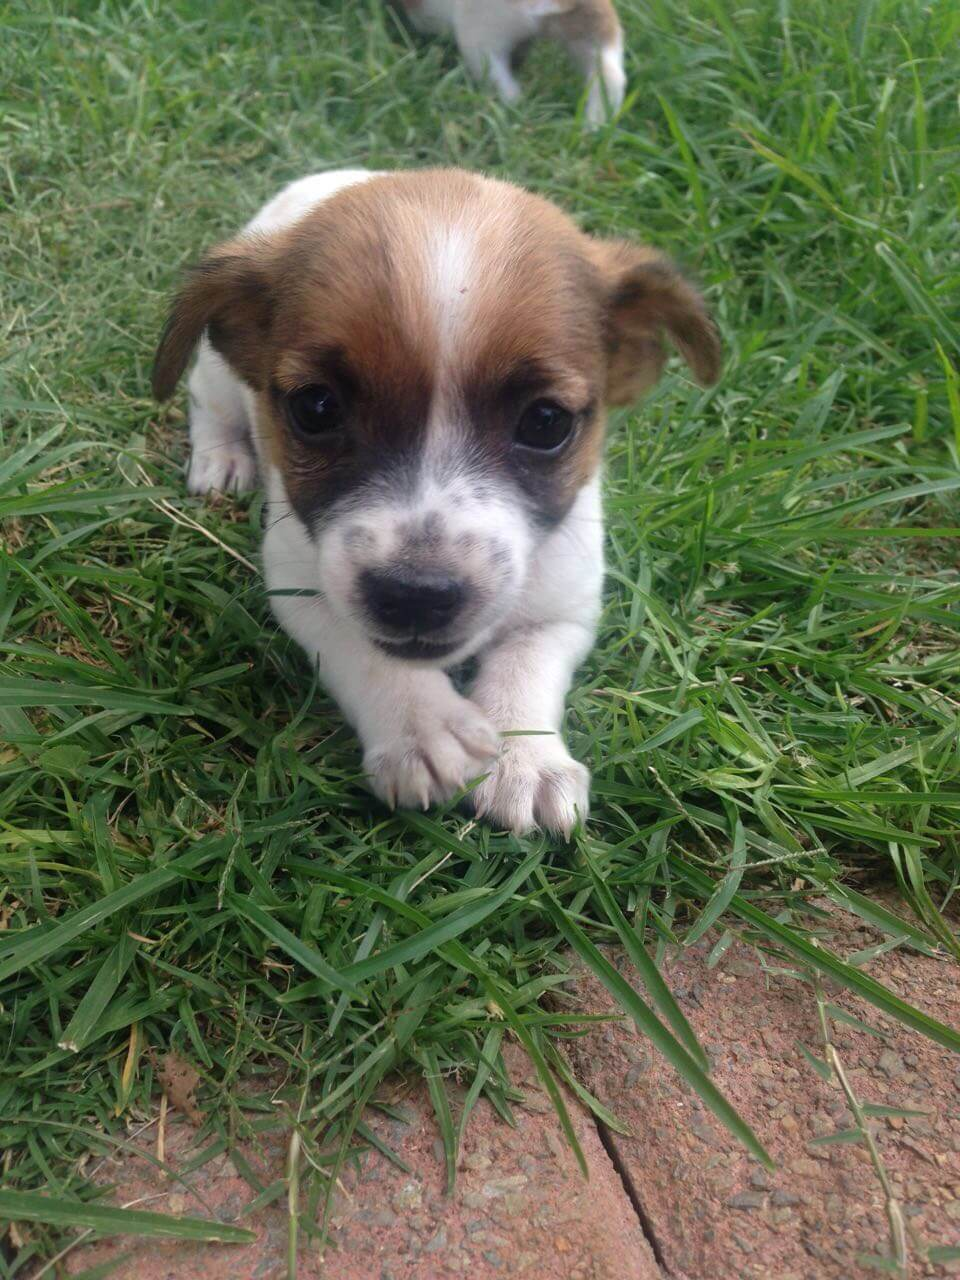 Jack Russel Puppies for Sale in Johannesburg by Matilda Louwrens